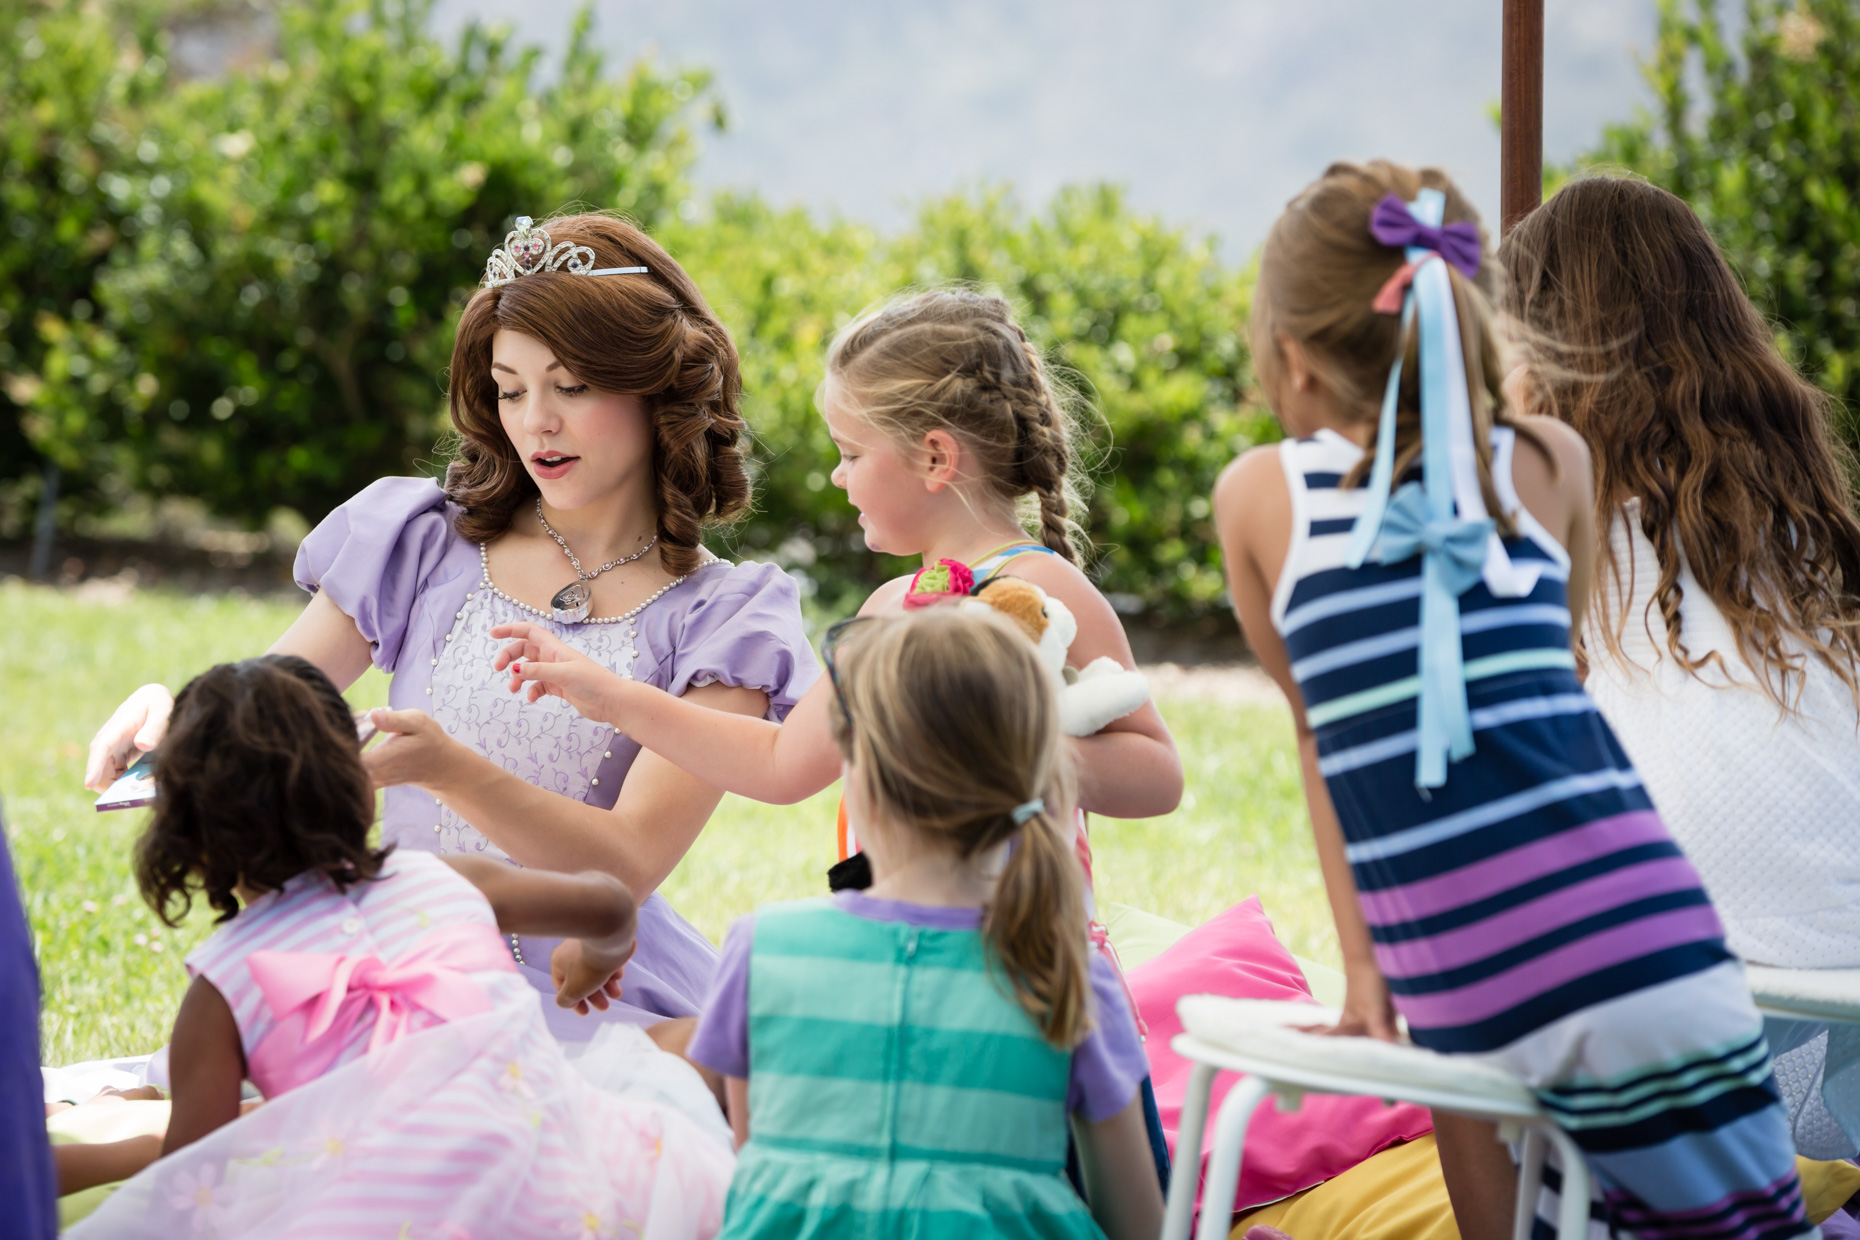 Princess Sofia impresses young children at a birthday party in Pacific Palisades, CA with her magic spells. Photo courtesy of  Drongo Photo .